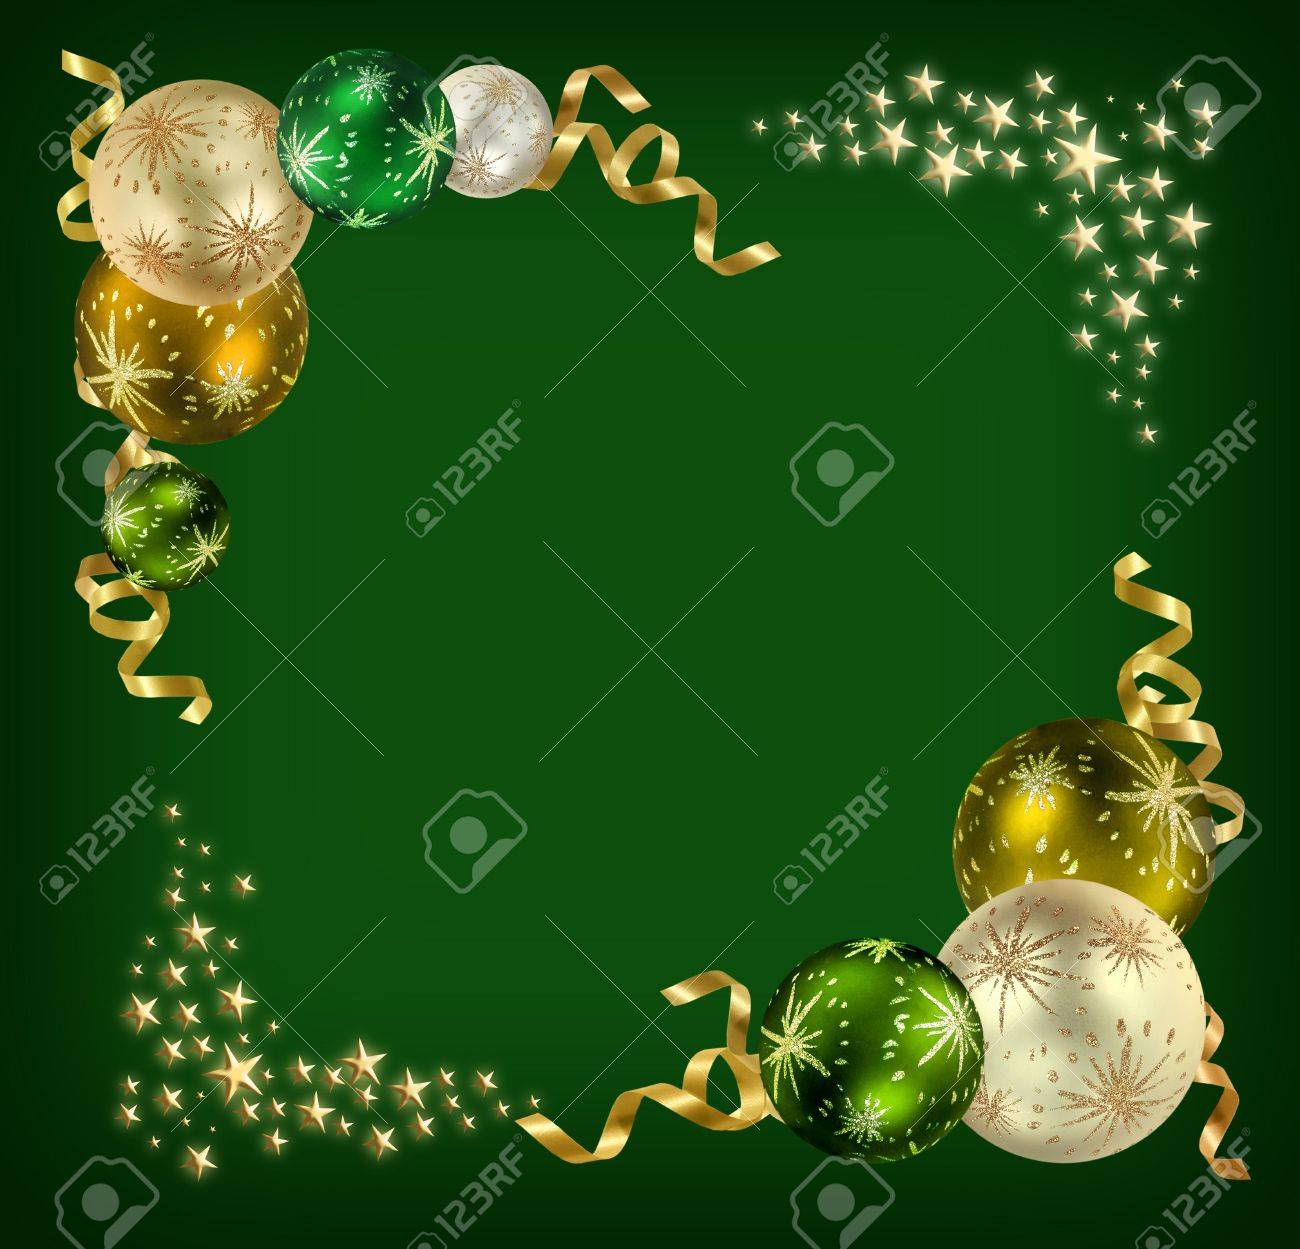 Christmas feeling background with green, silver and golden balls surrounded by golden ribbons and stars - 5545950